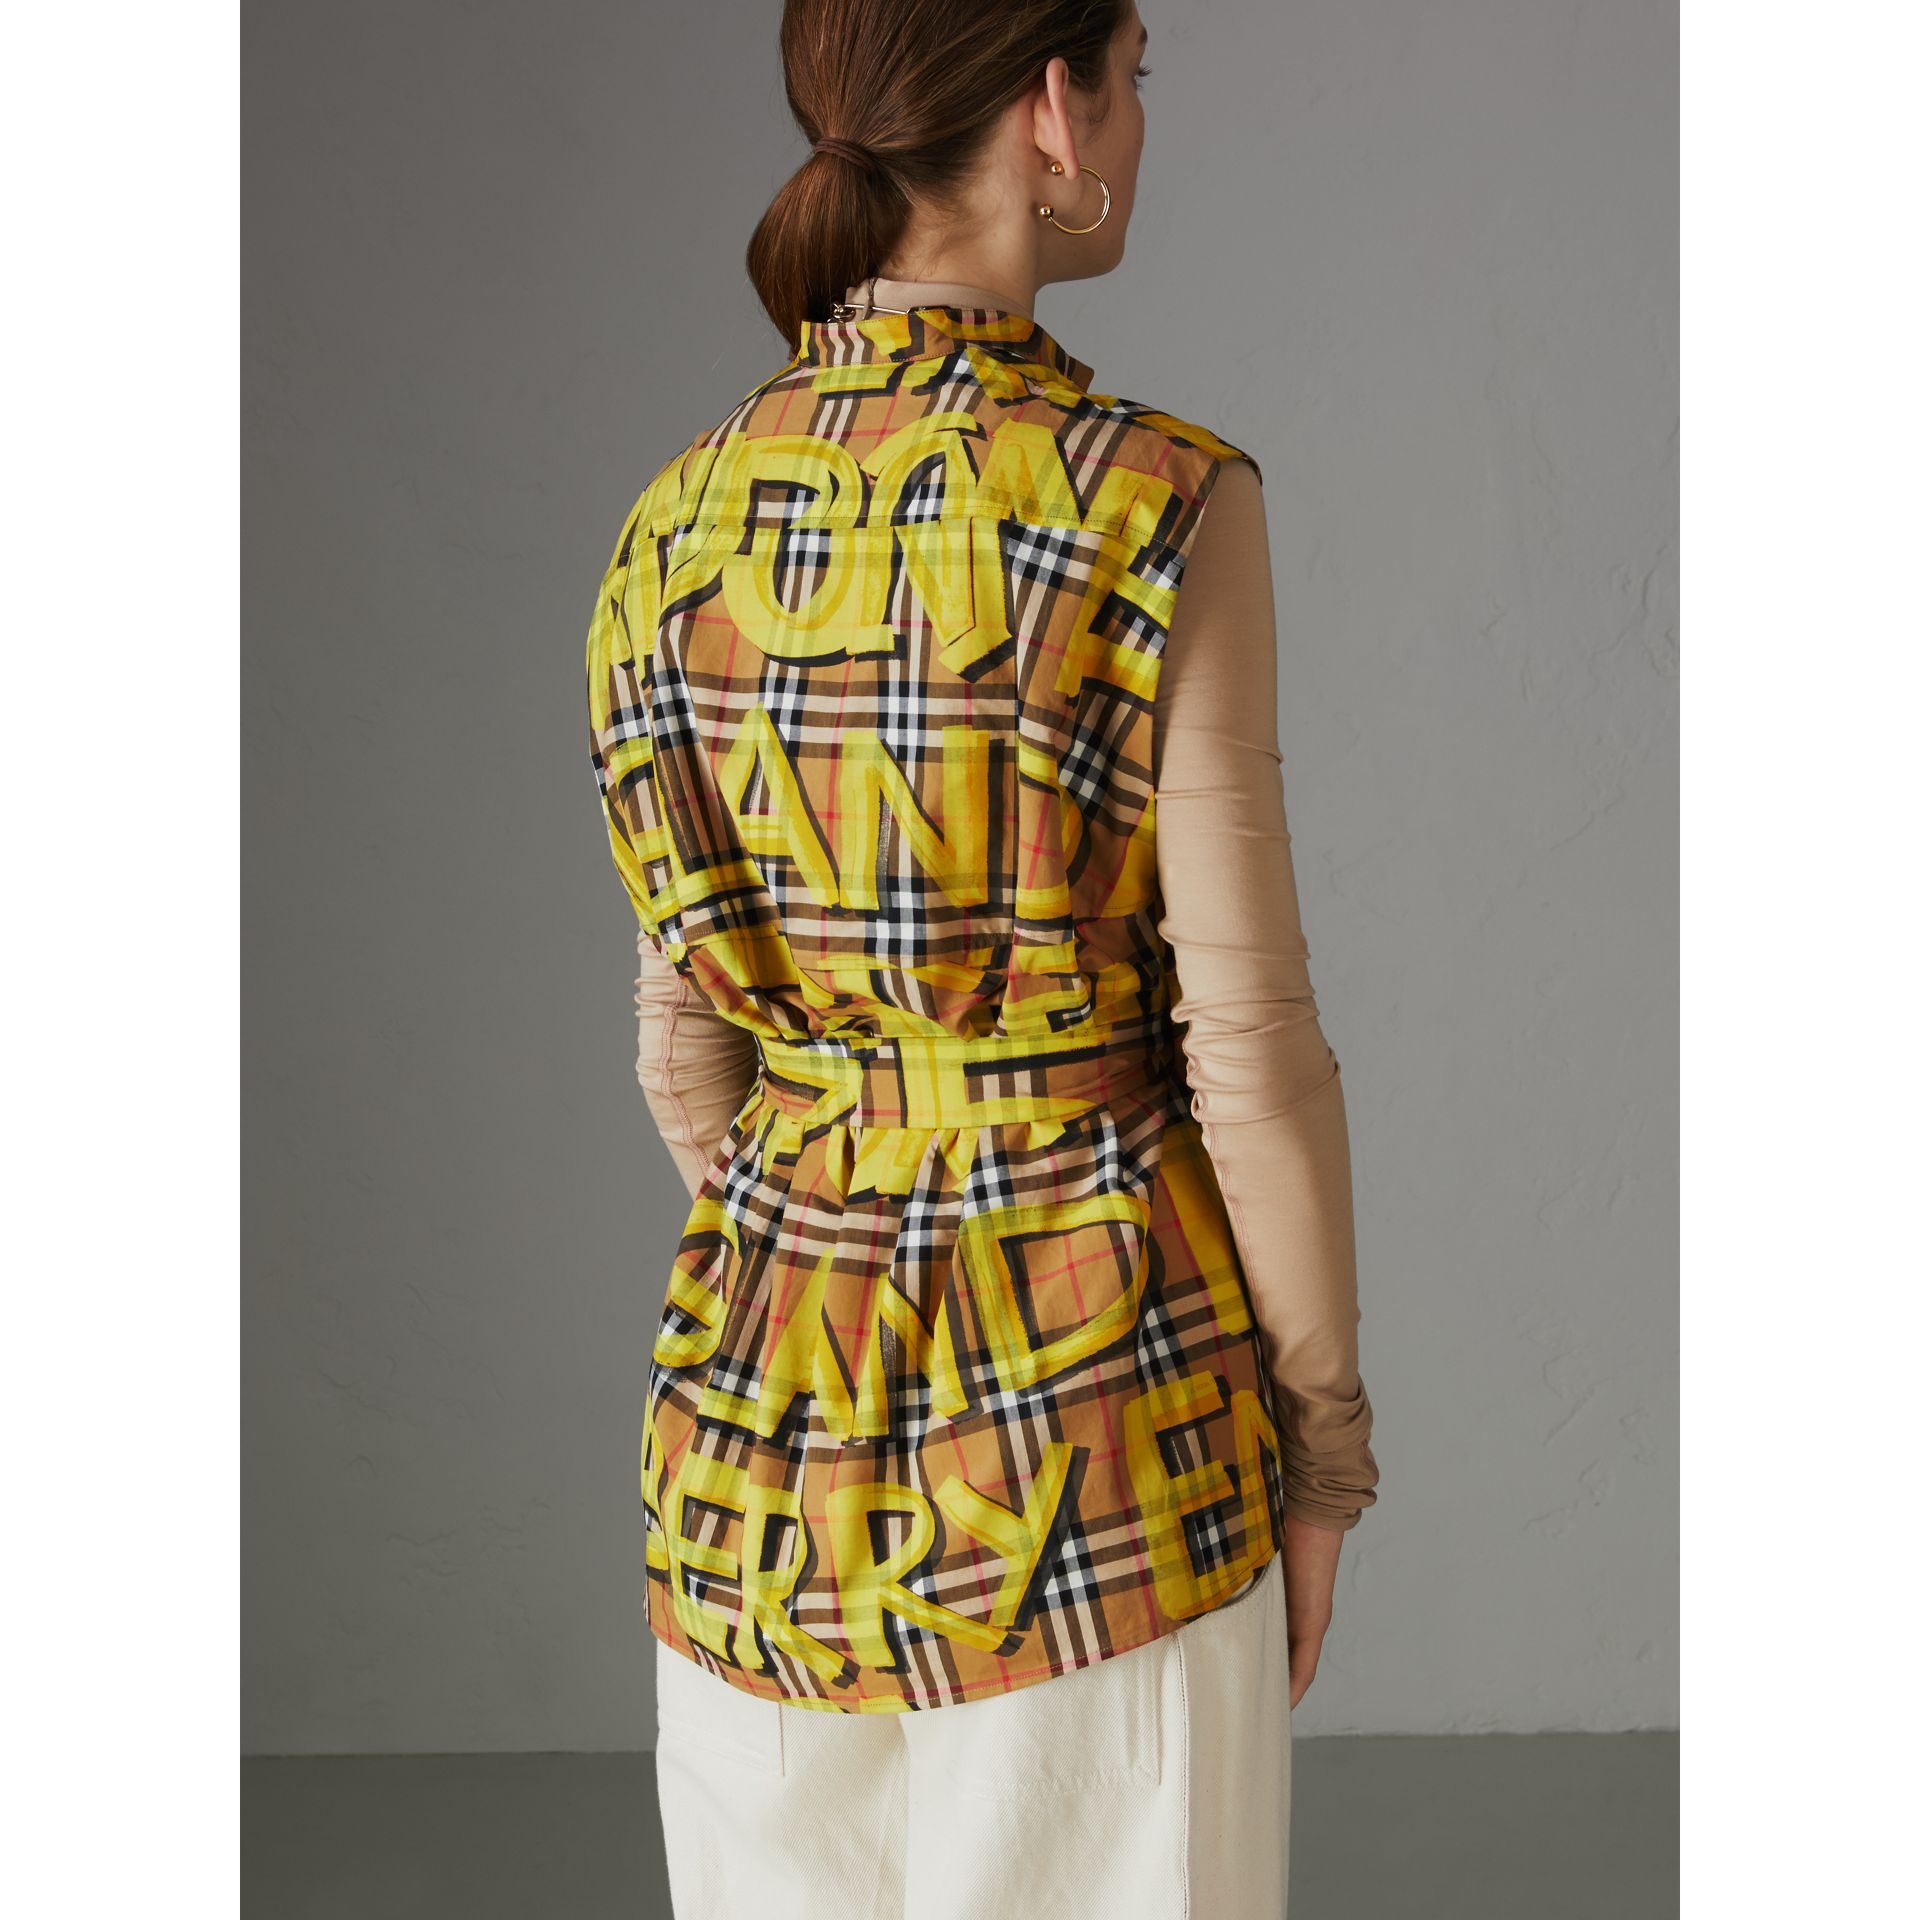 Sleeveless Graffiti Print Vintage Check Cotton Shirt in Bright Yellow - Women | Burberry Australia - gallery image 2